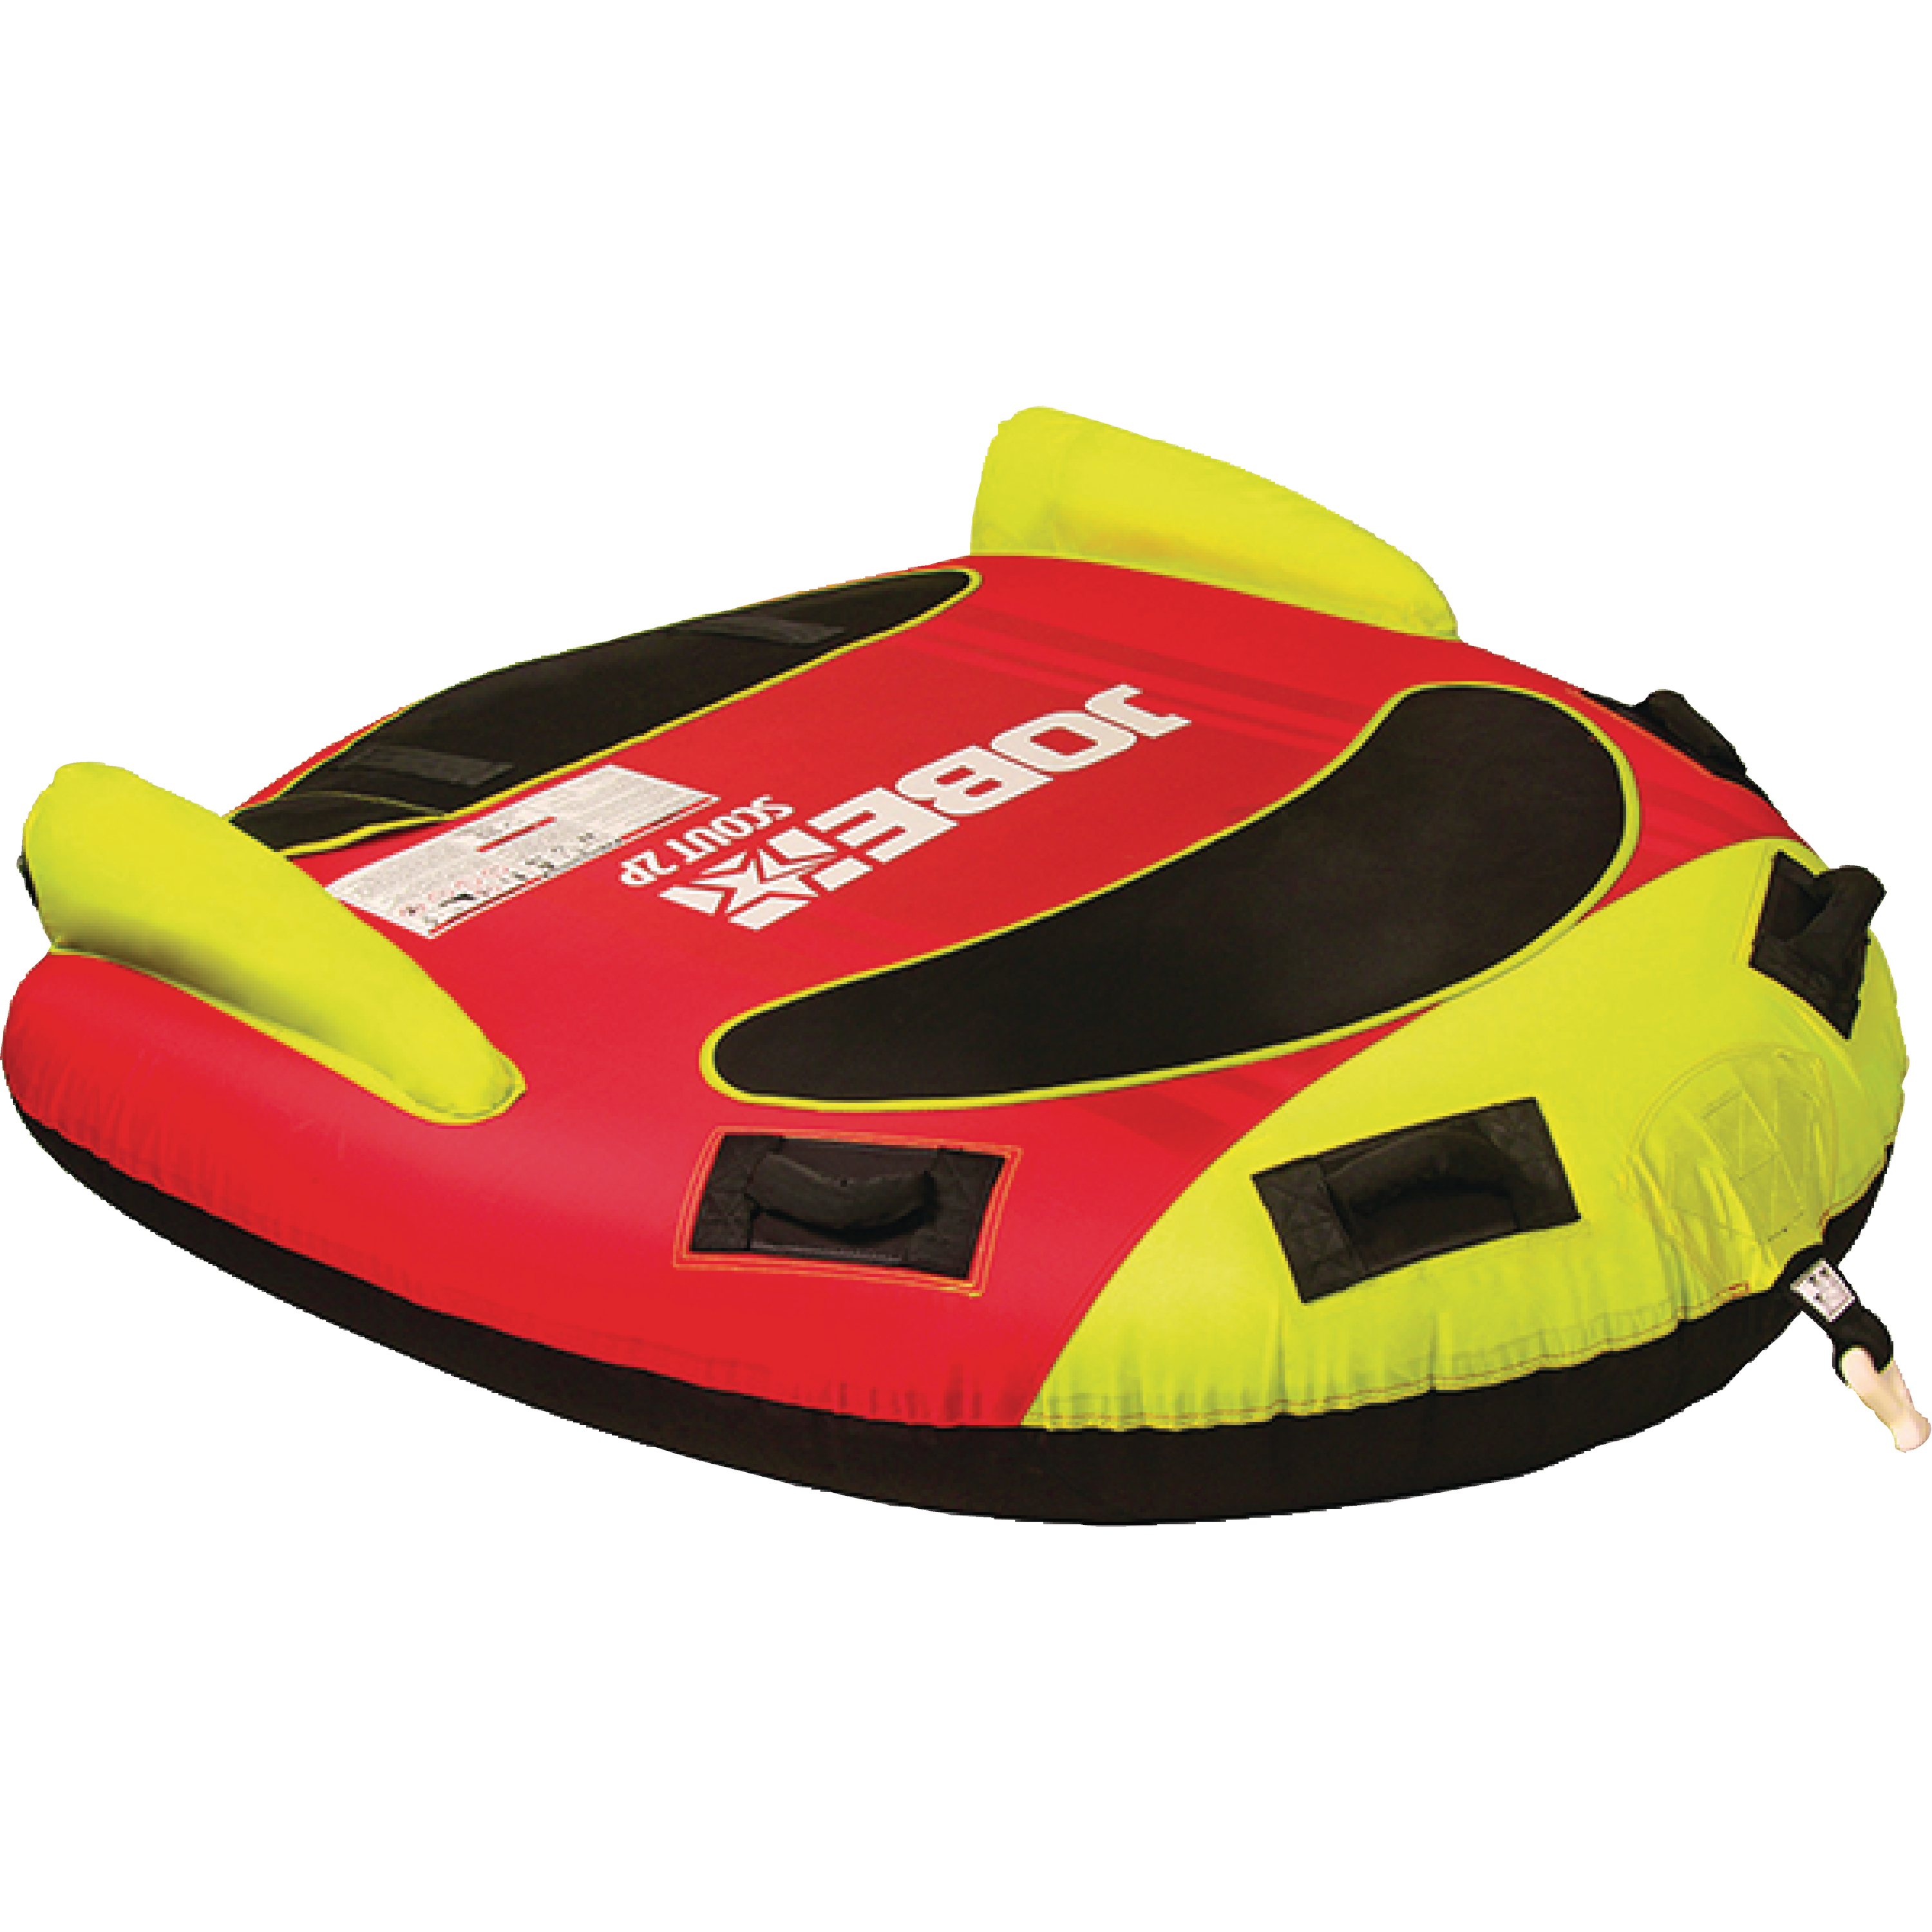 Jobe Scout Red Deck Tube Inflatable Towable